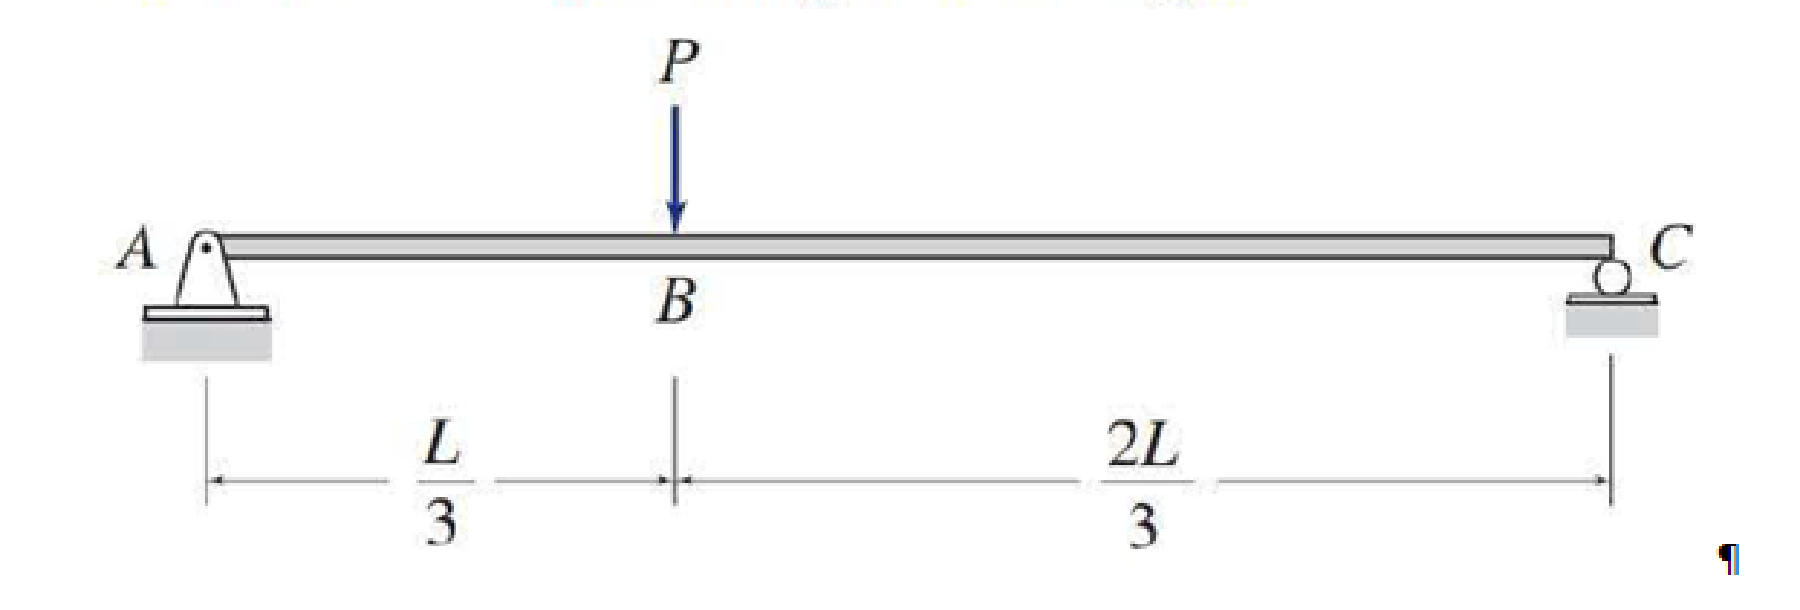 Chapter 5, Problem 13P, Determine the equations for shear and bending moment for the beam shown. Use the resulting equations